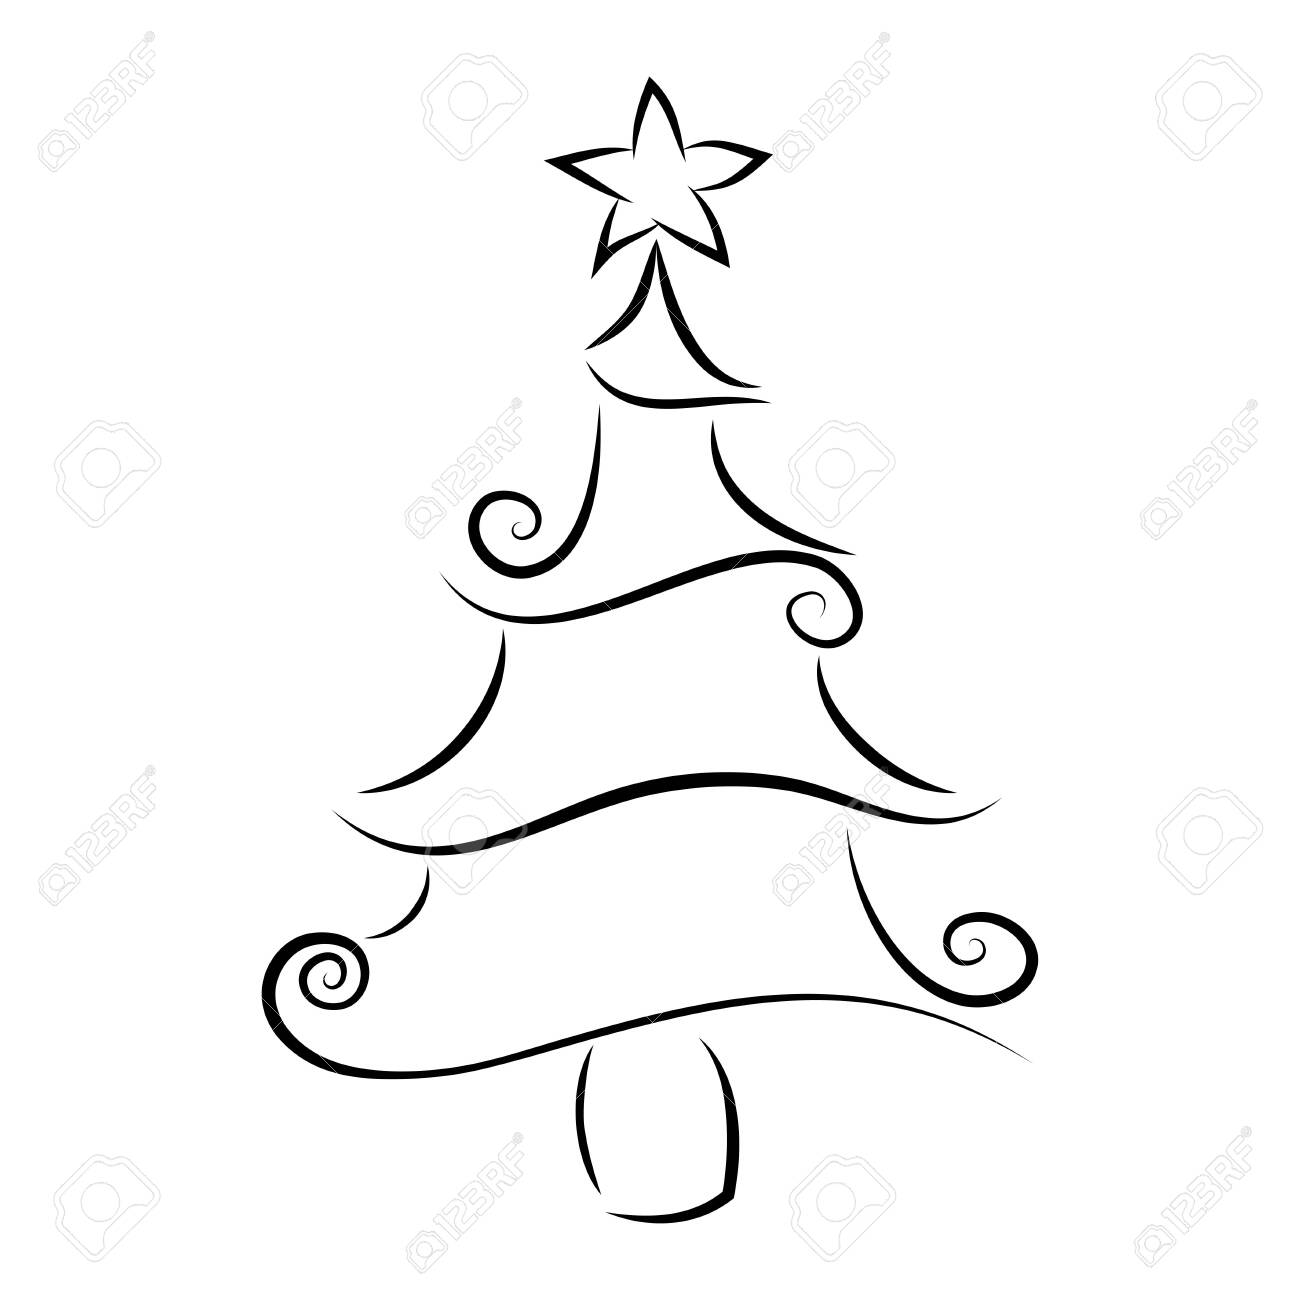 Christmas Tree Outline With A Decorative Element Decorated Curly Line Abstract Isolated Fir Tree Merry Christmas Happy New Year 2020 Greeting Card Background Linear Xmas Pine Tree Royalty Free Cliparts Vectors